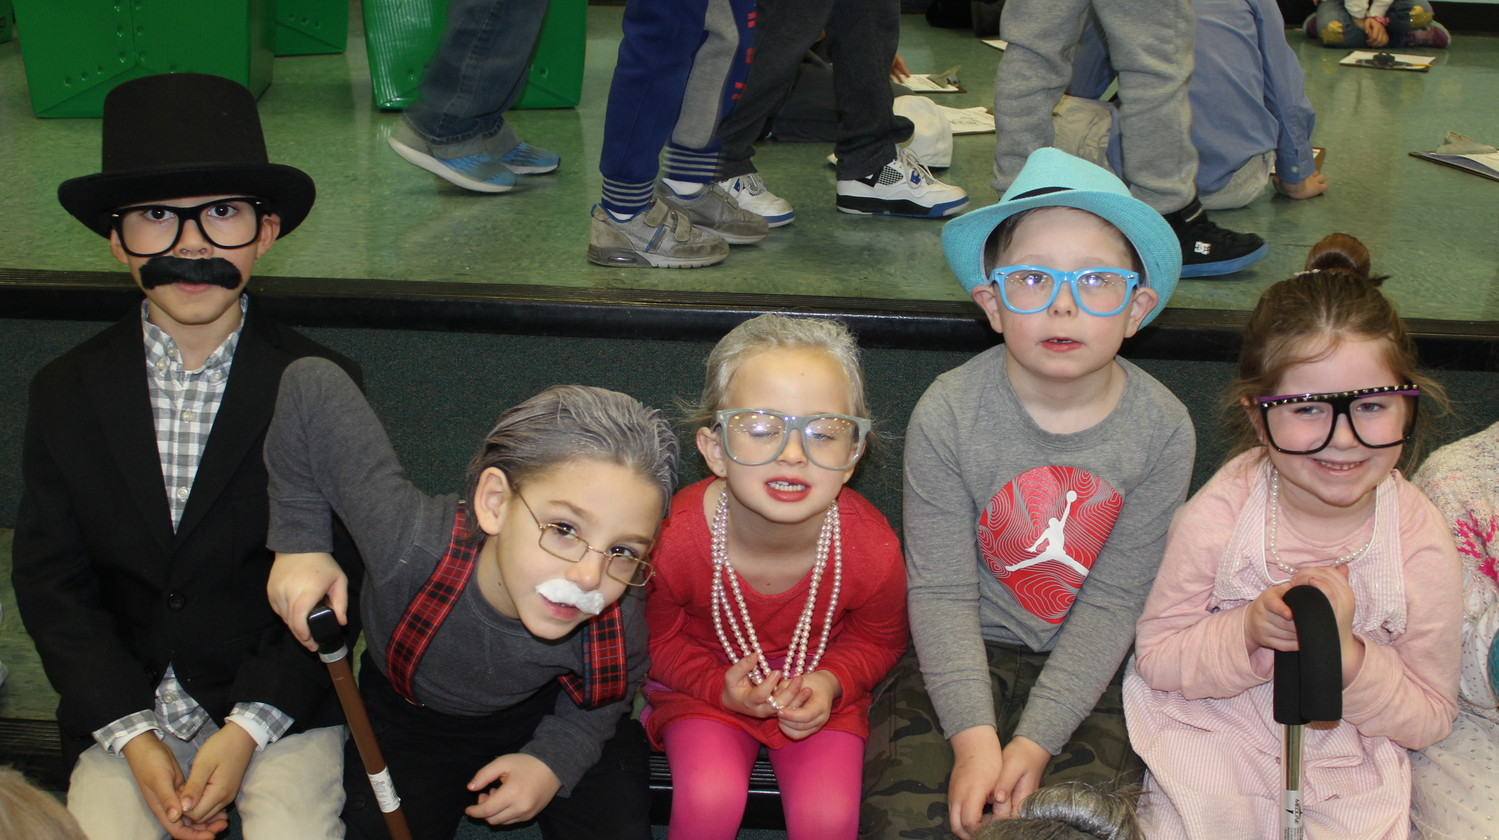 Hats, glasses, canes and grey hair were the fashions of the day at Chatterton on the 100th day of school.